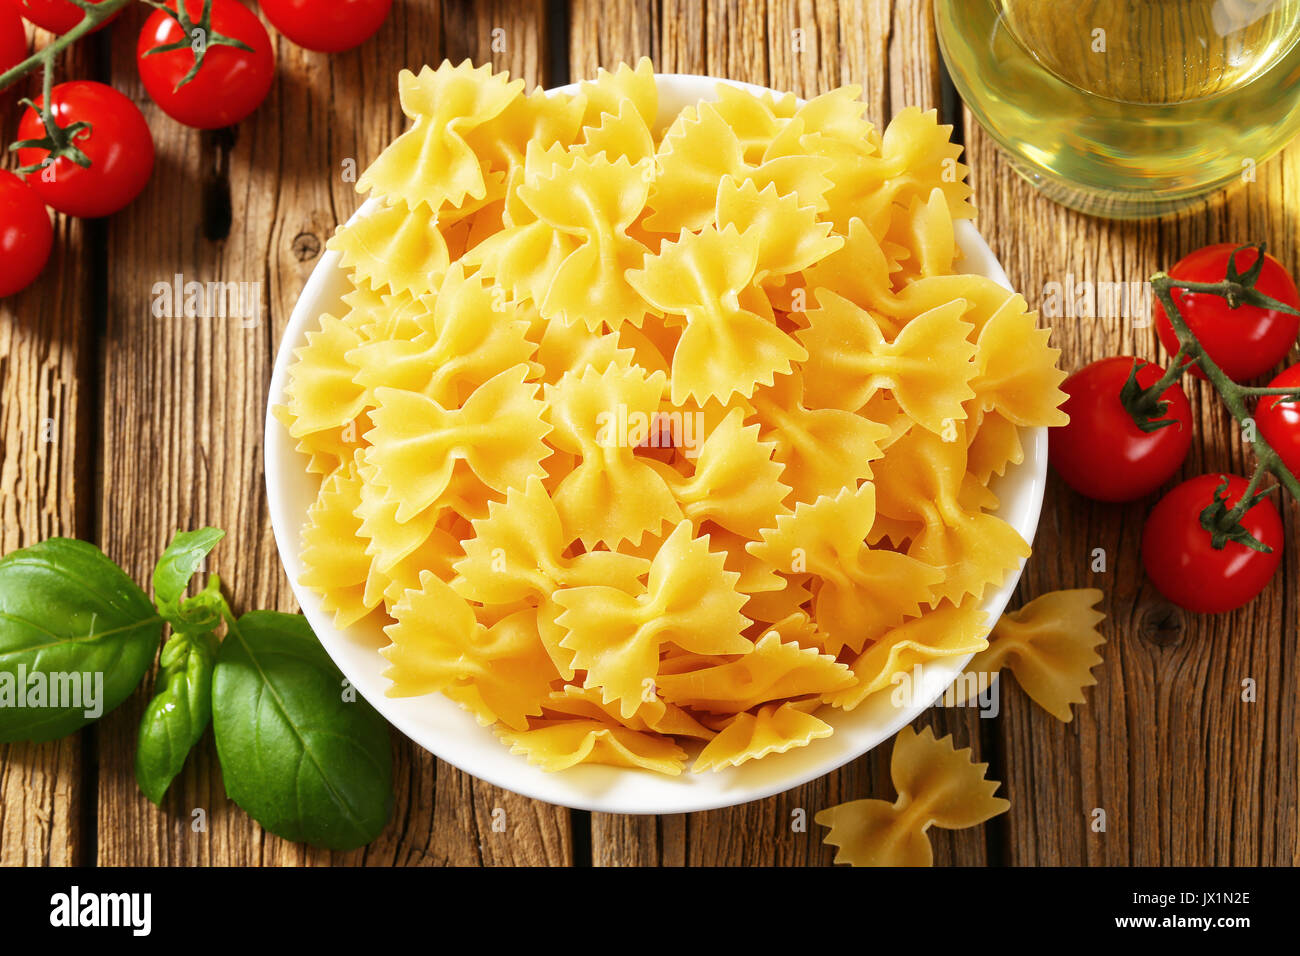 Uncooked bow tie pasta in bowl - Stock Image